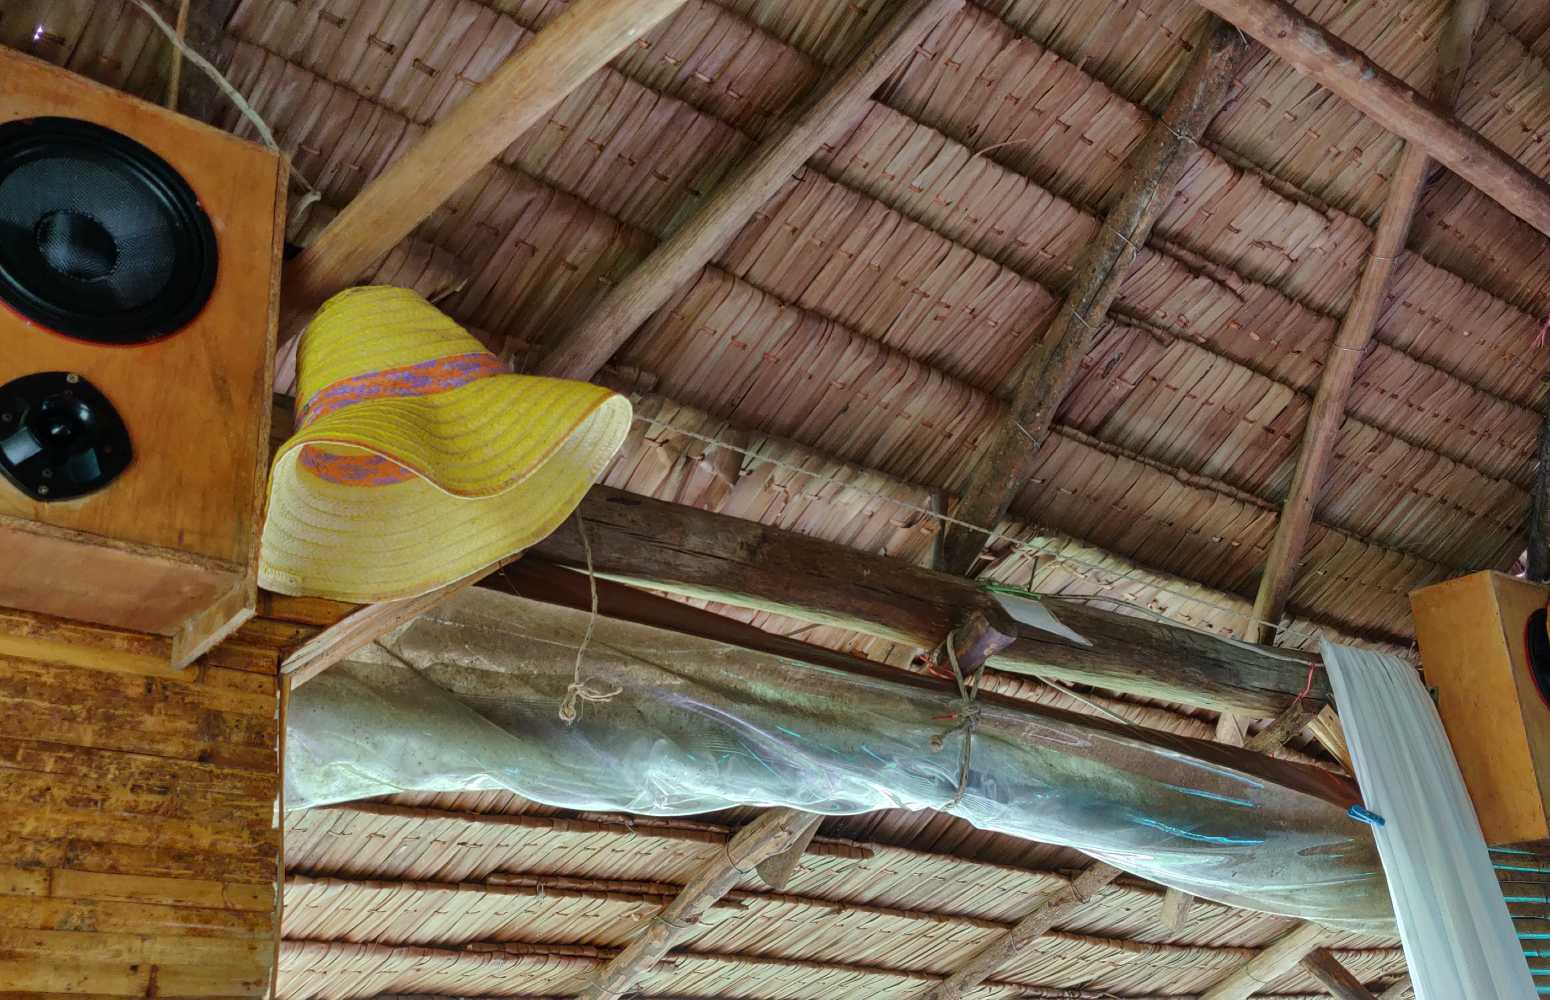 Loud music from the speakers at Dr Saad Medical Massage in Koh Yao Yai, Thailand.